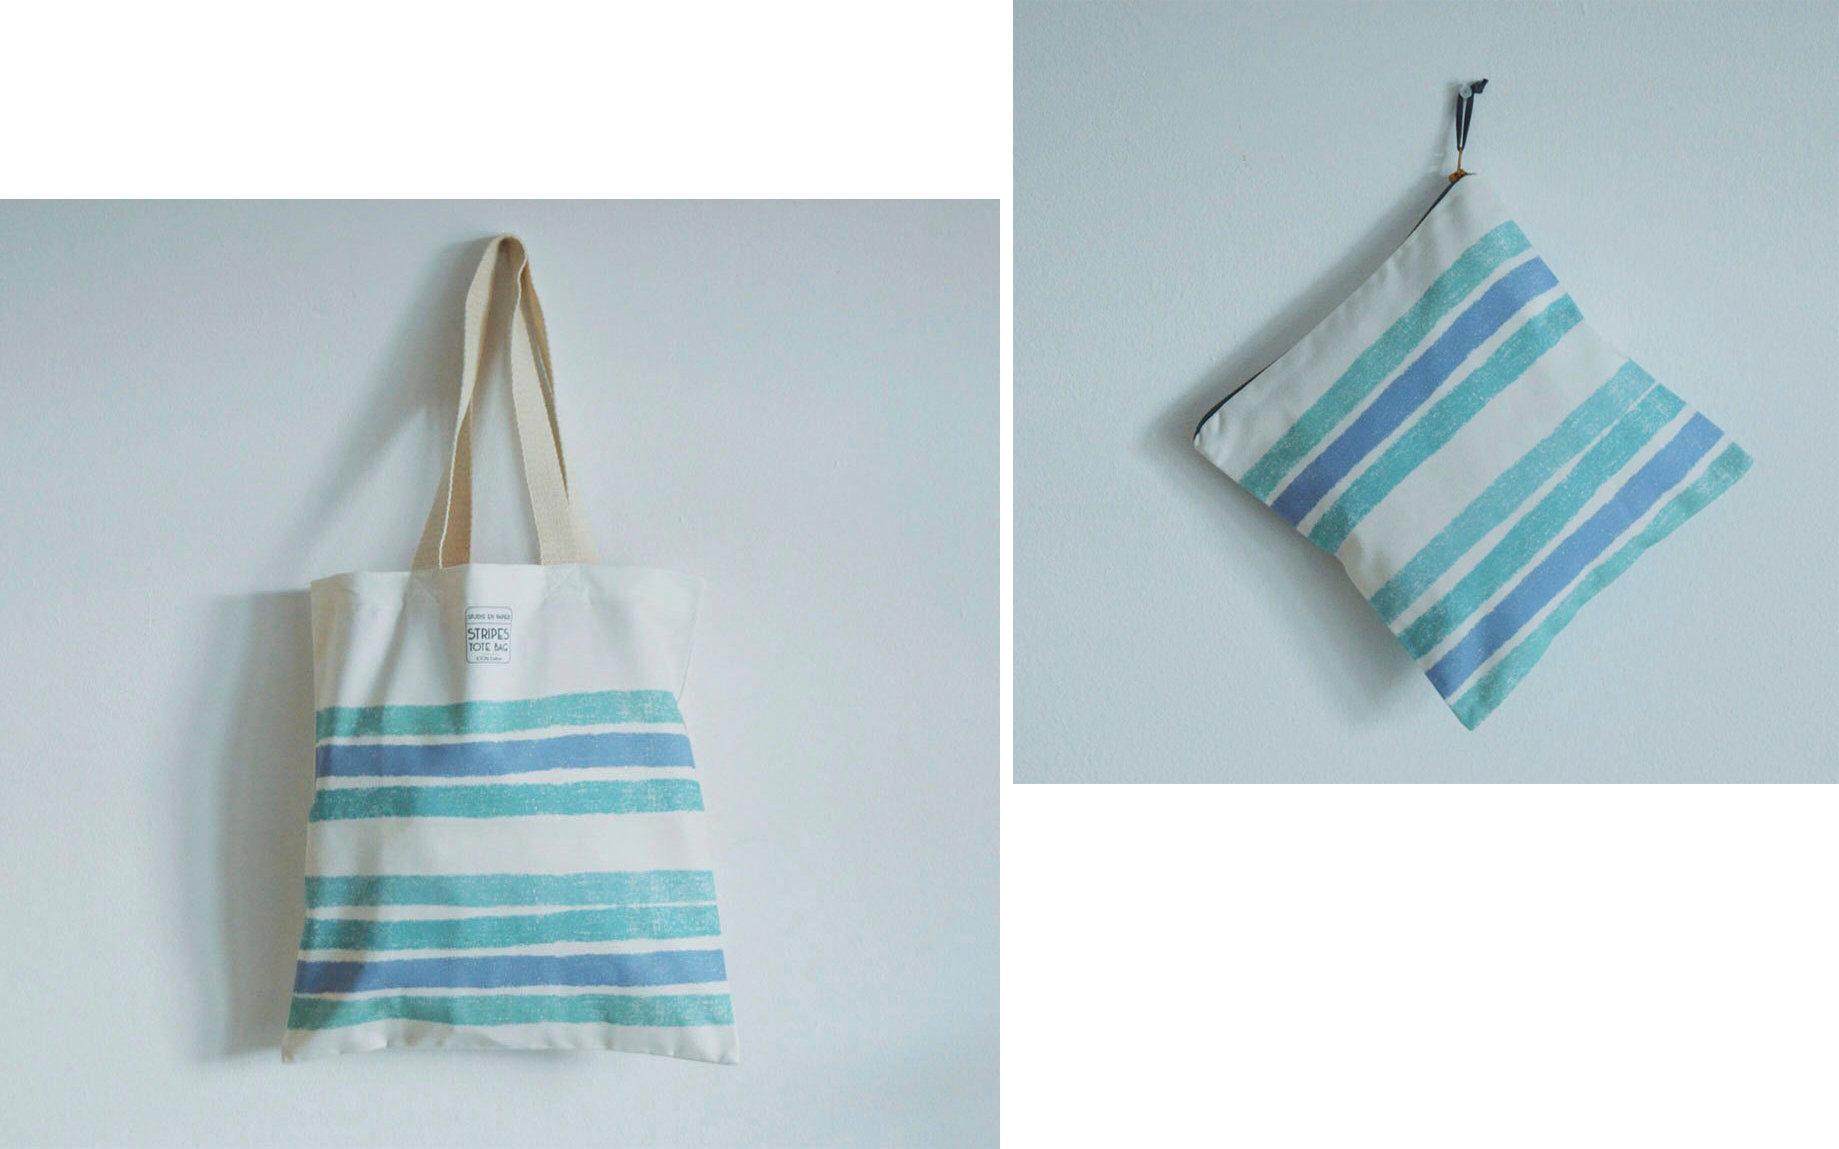 3azul_stripes_totebag_studioenpapier_shop